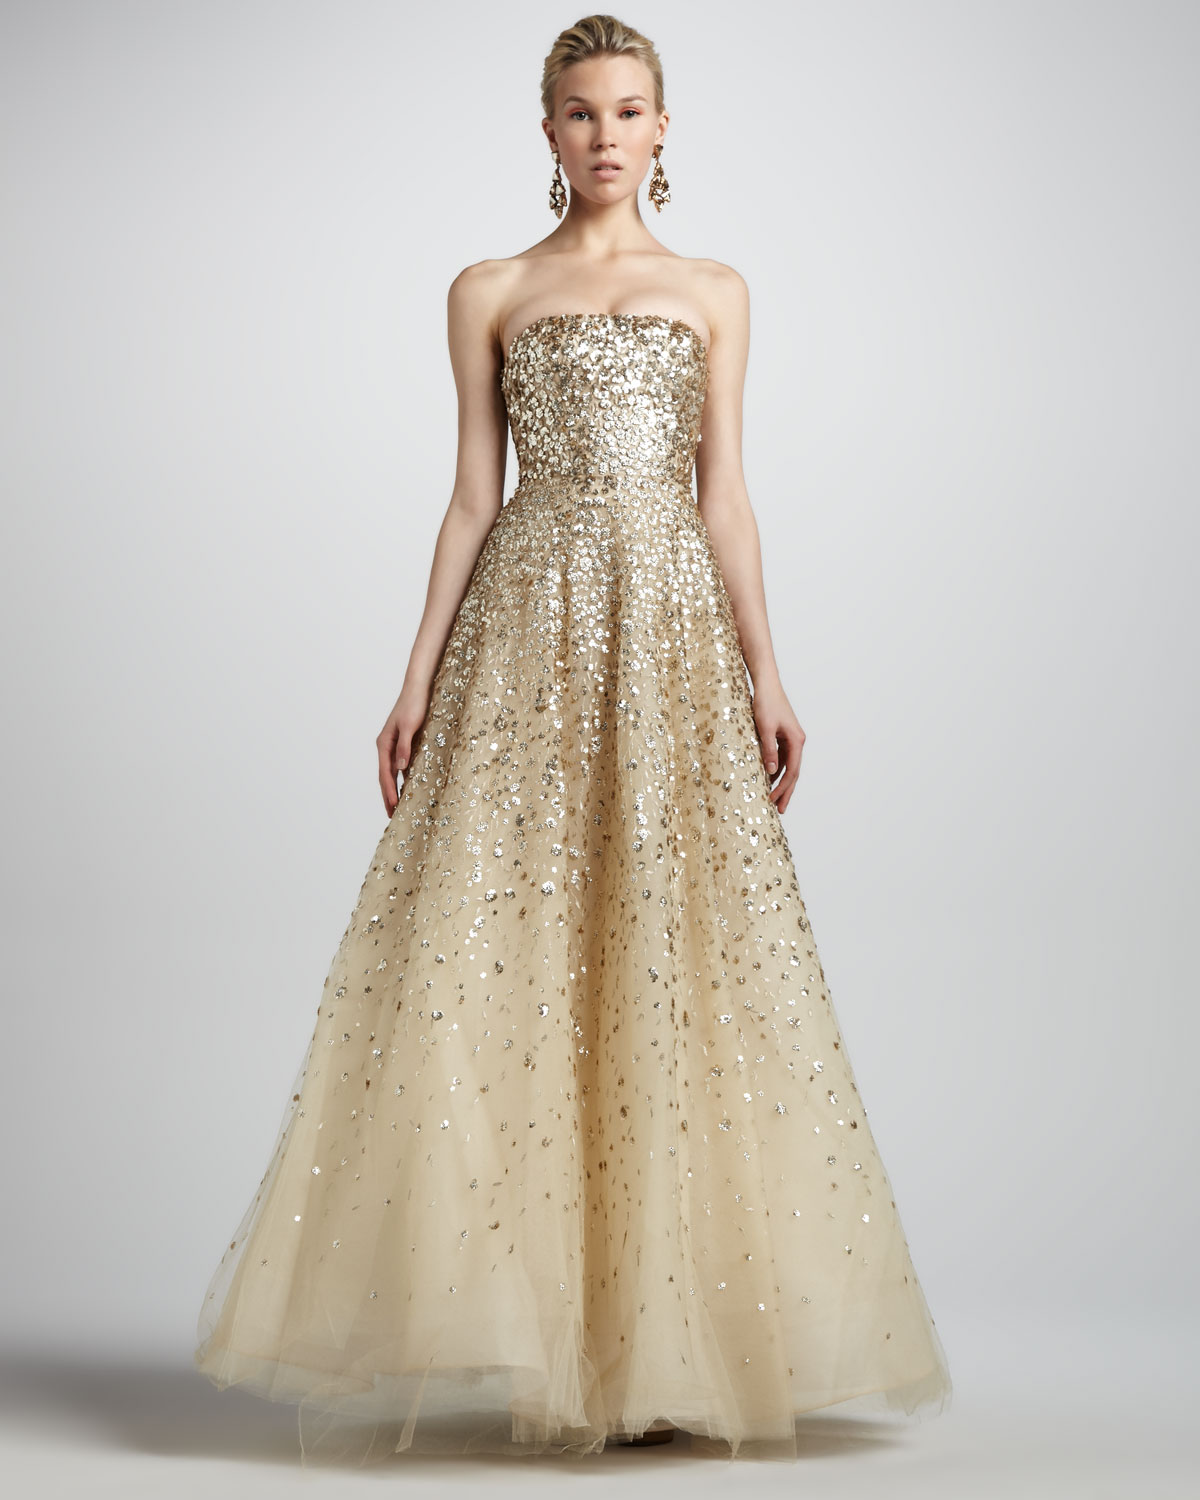 Lyst oscar de la renta strapless floral paillette ball for Where to buy oscar de la renta wedding dress